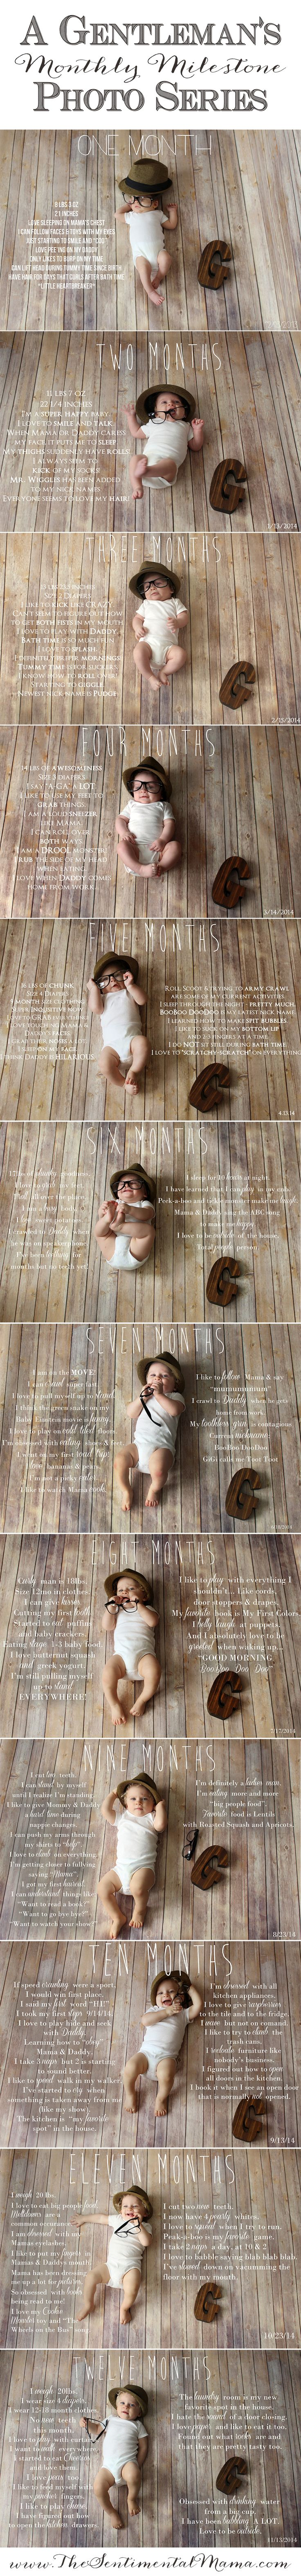 Monthly Baby Photos | Tips and Lessons Learned Too! | Milestone Pictures | Gentlemans Monthly Milestone Photo Series | http://thesentimentalmama.com/monthly-baby-photos-tips-tricks/